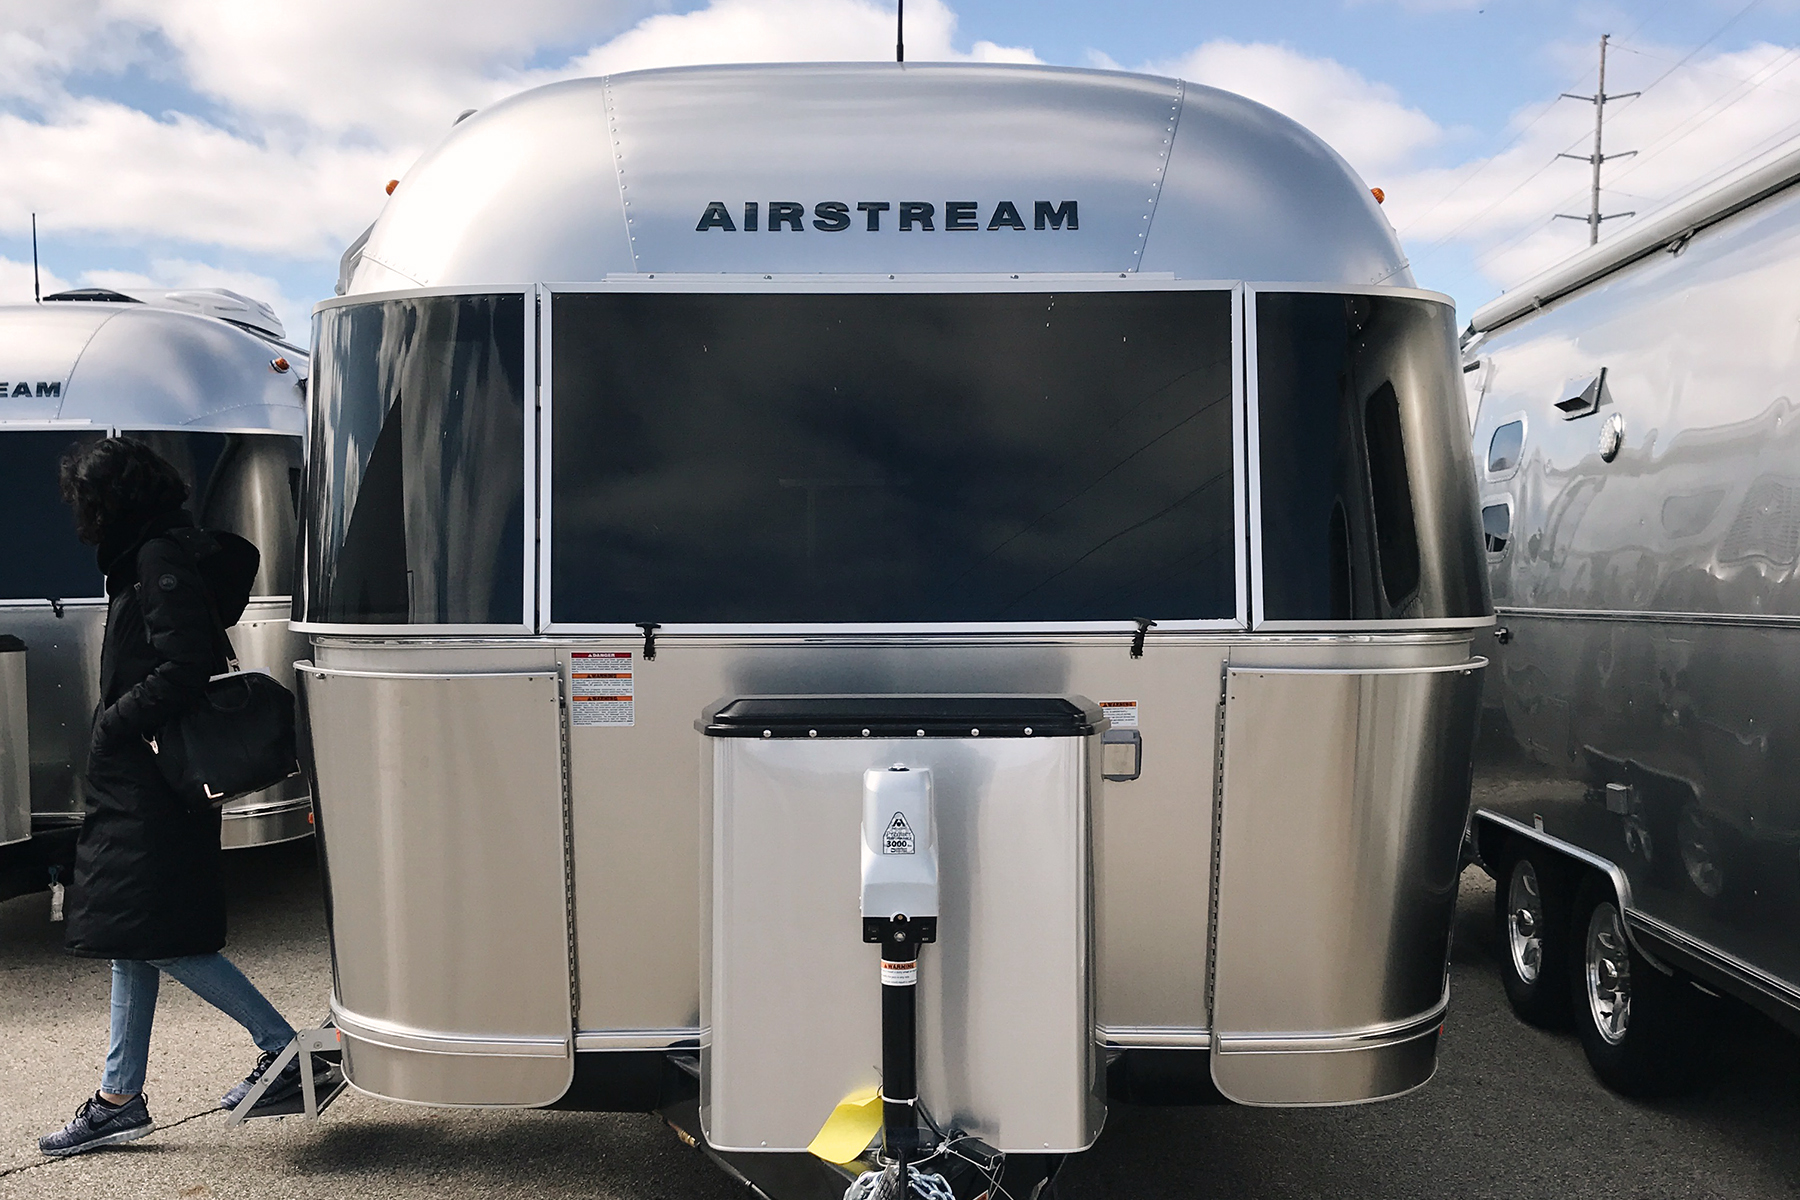 TYLER + KENDRA BOUGHT THEIR  AIRSTREAM  IN JUNE 2017 (AT  WOODLAND TRAVEL CENTER  IN GRAND RAPIDS, MI)